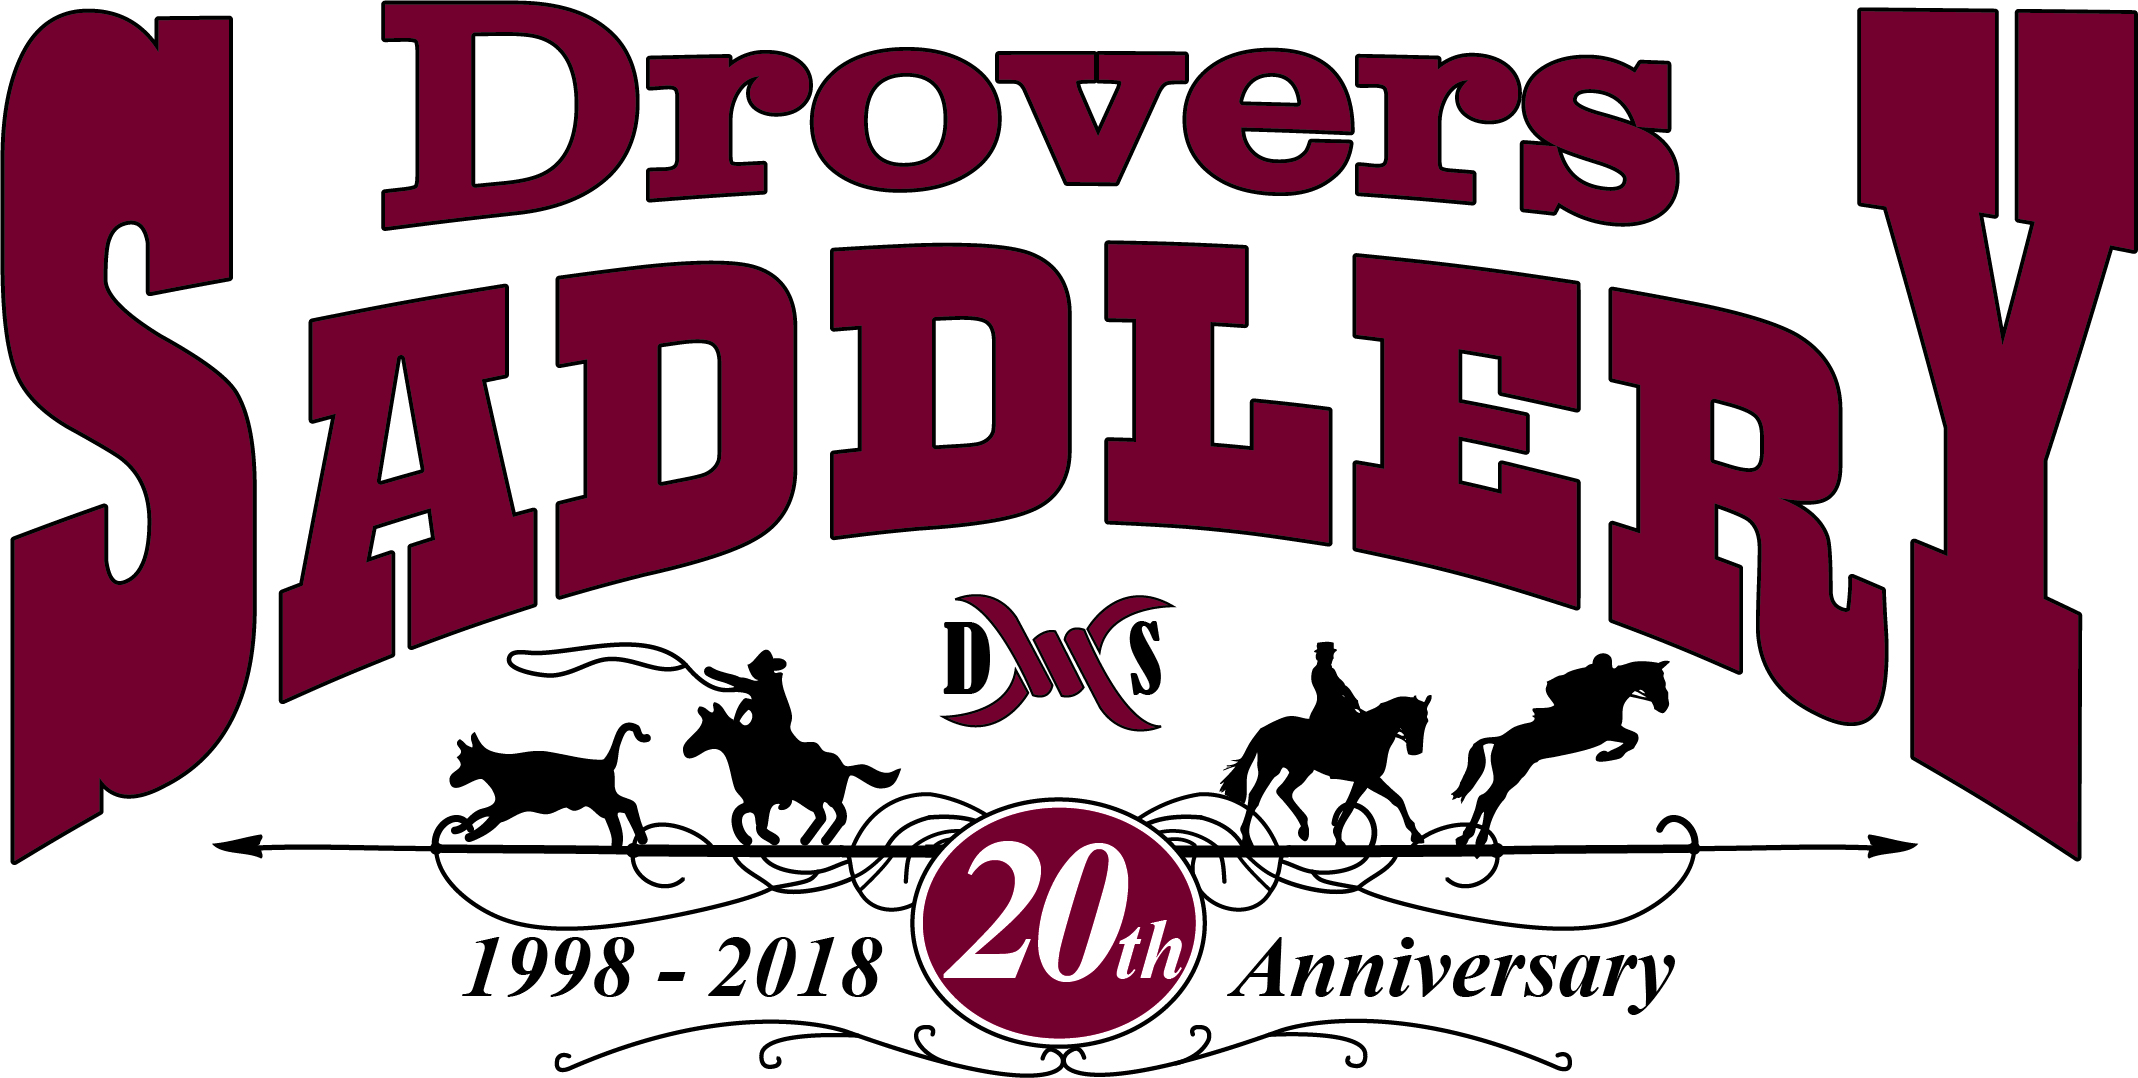 Drovers Saddlery